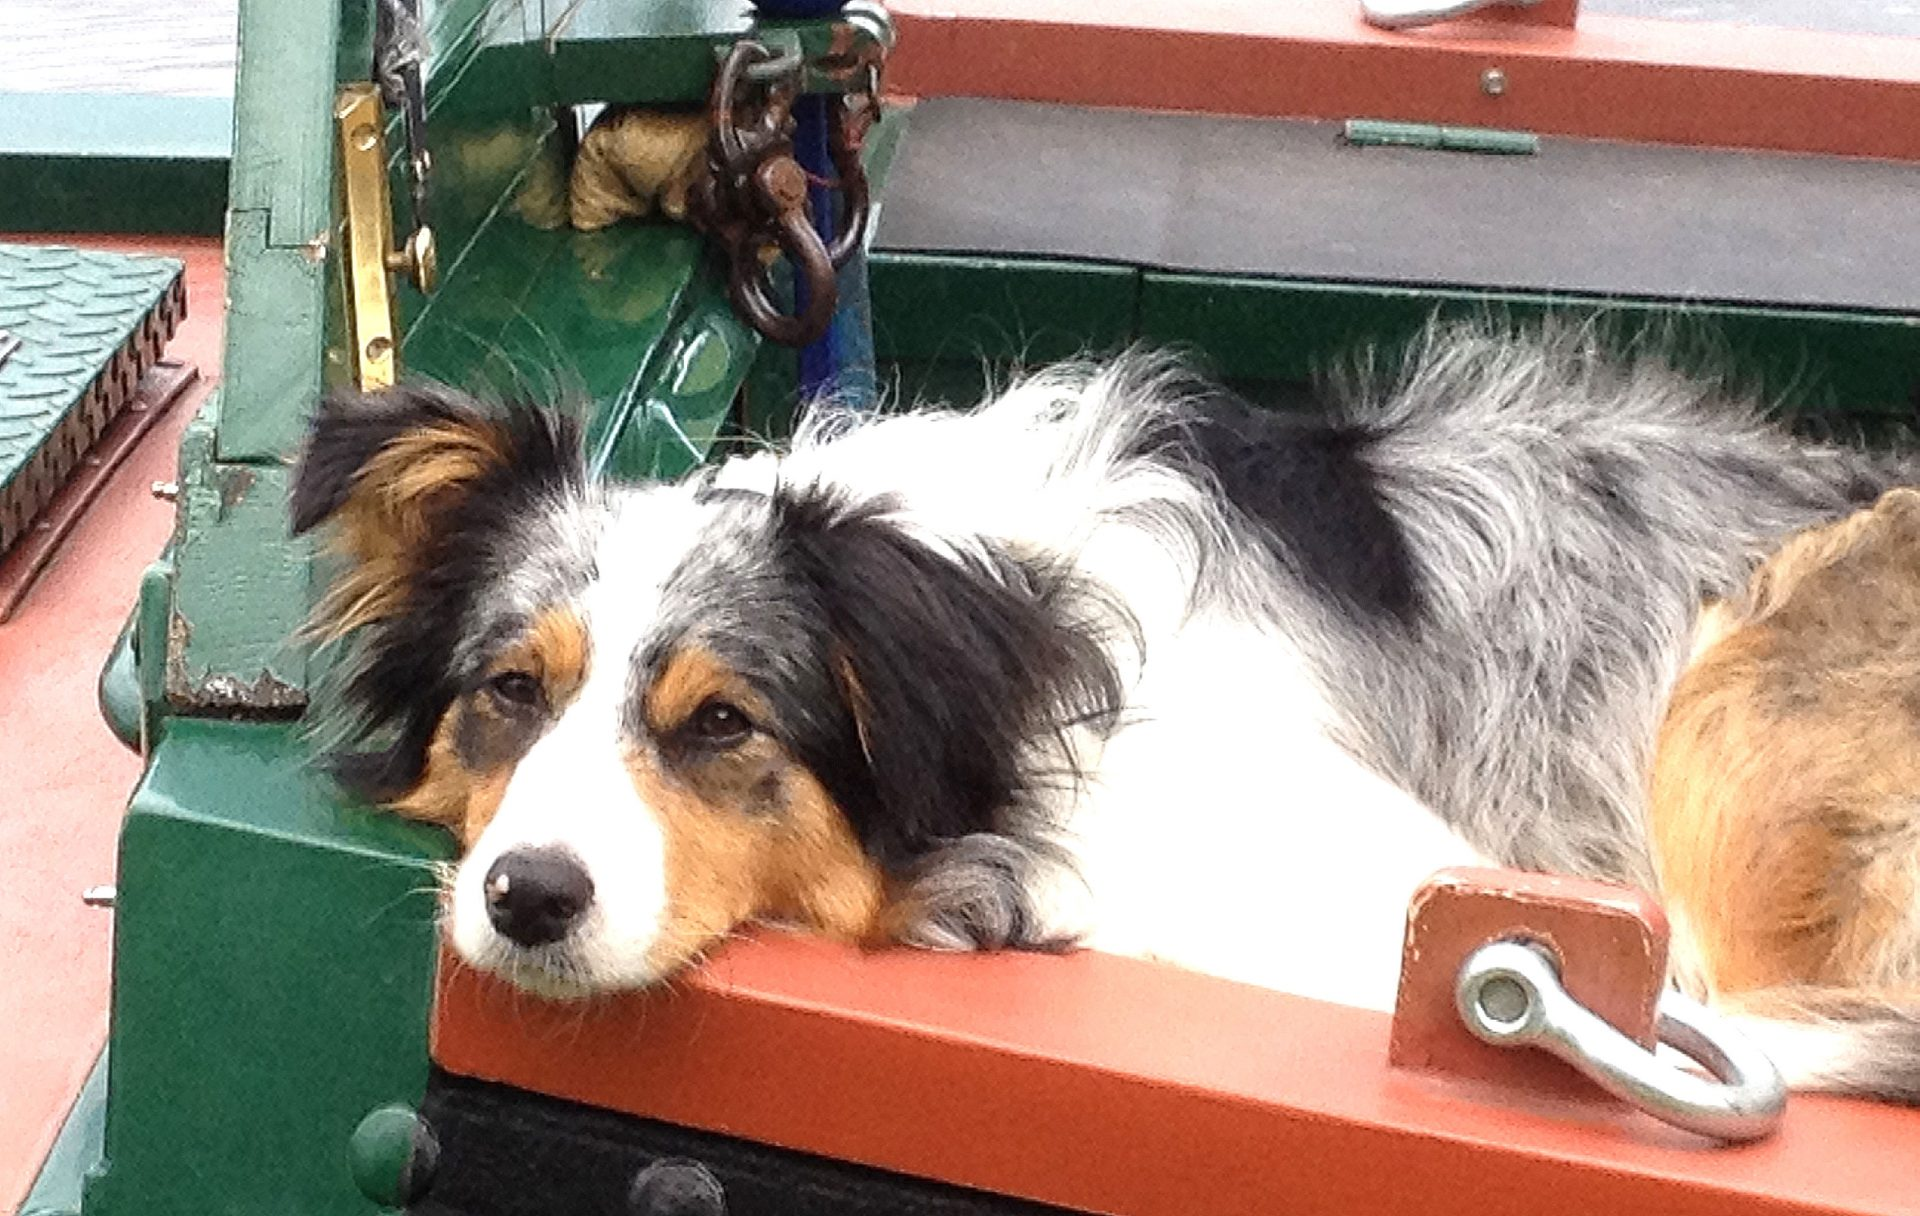 Boat dogs are usually fairly laid back. Just like this one.